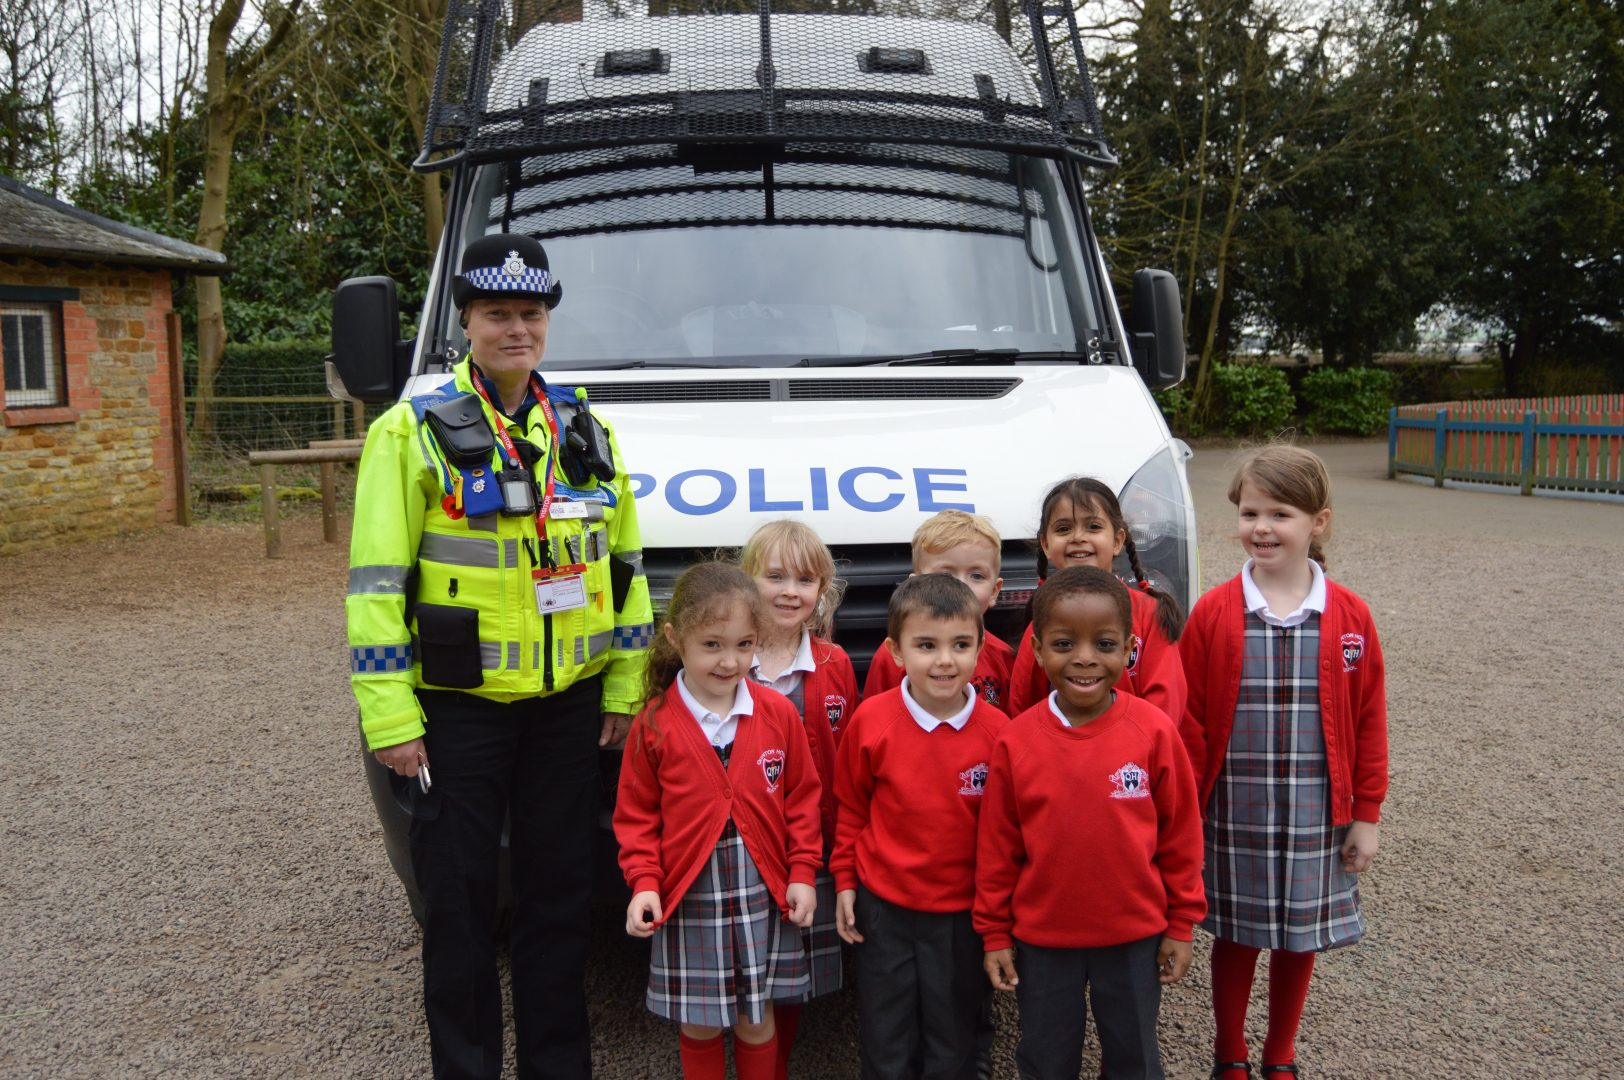 QHS Early Years pose with the Police